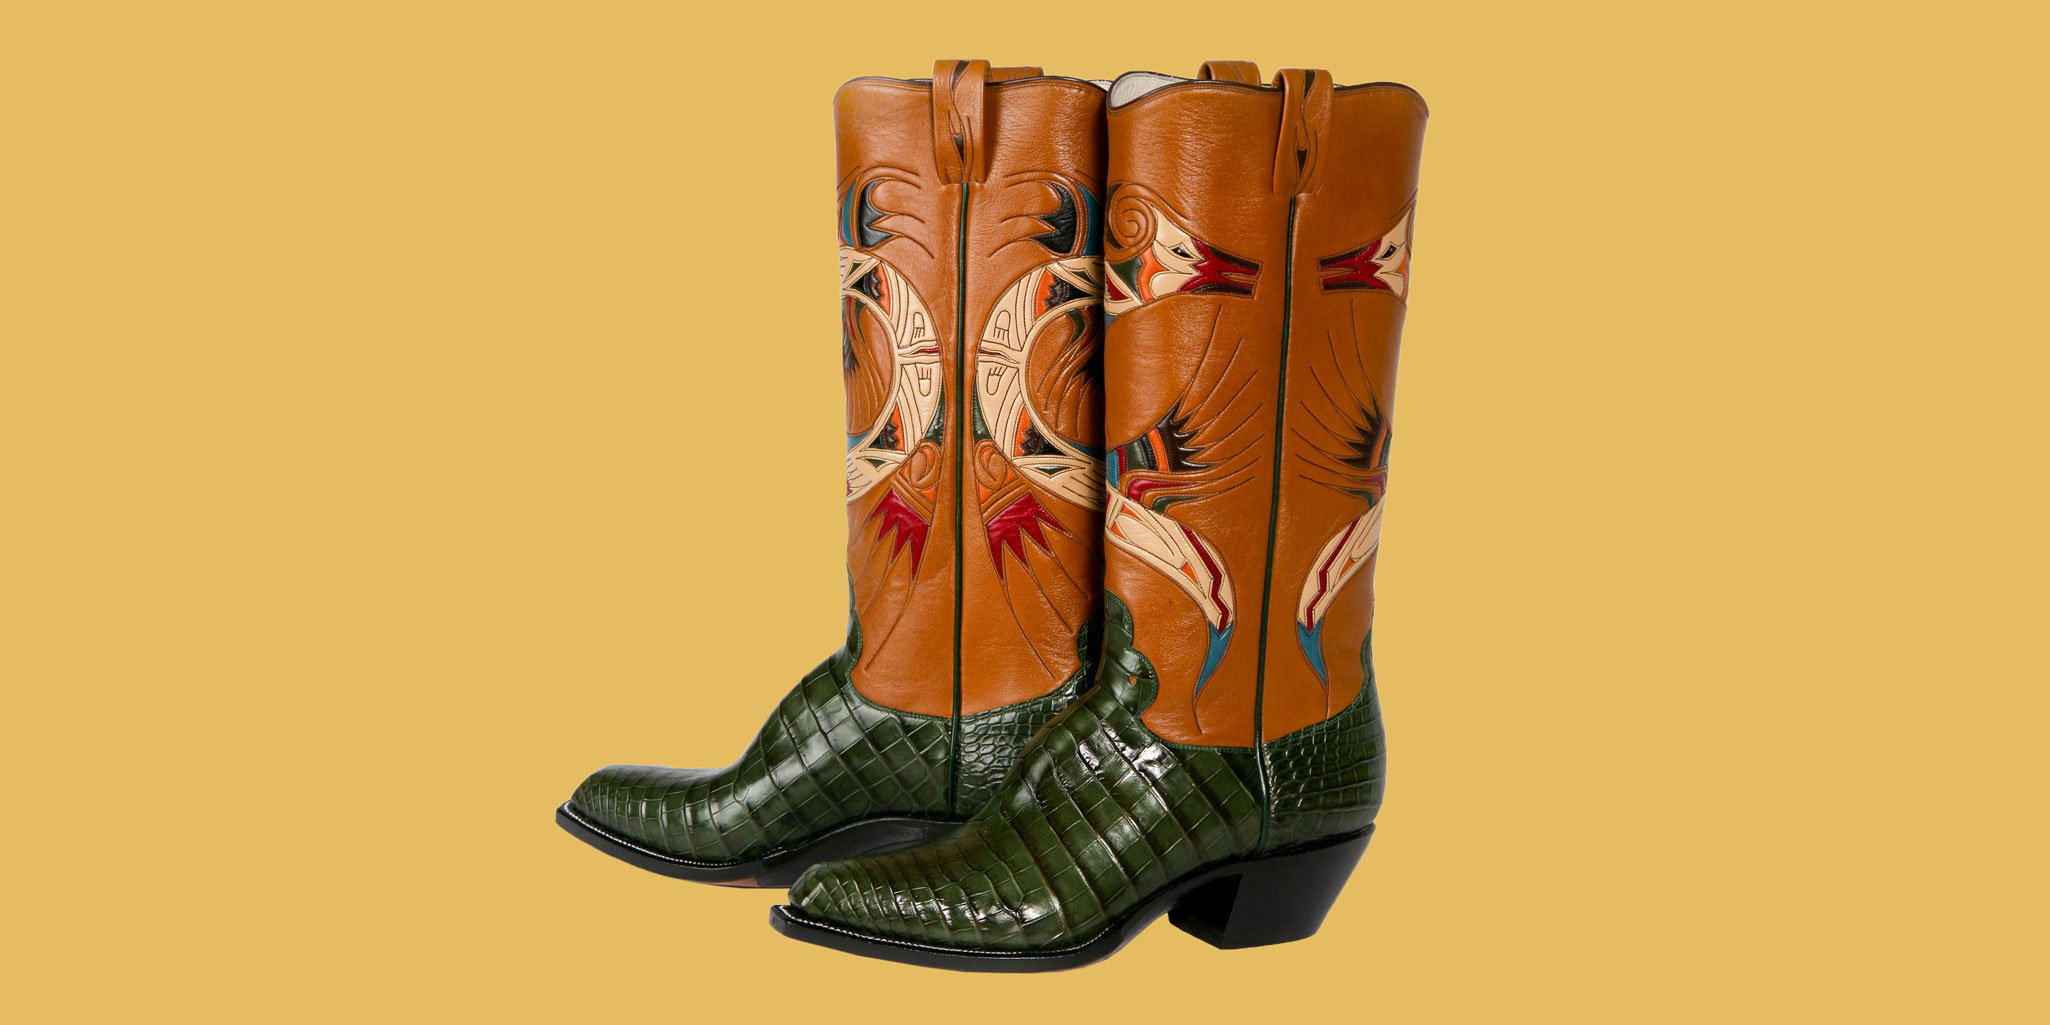 Bespoke Boots That Dazzle | Business